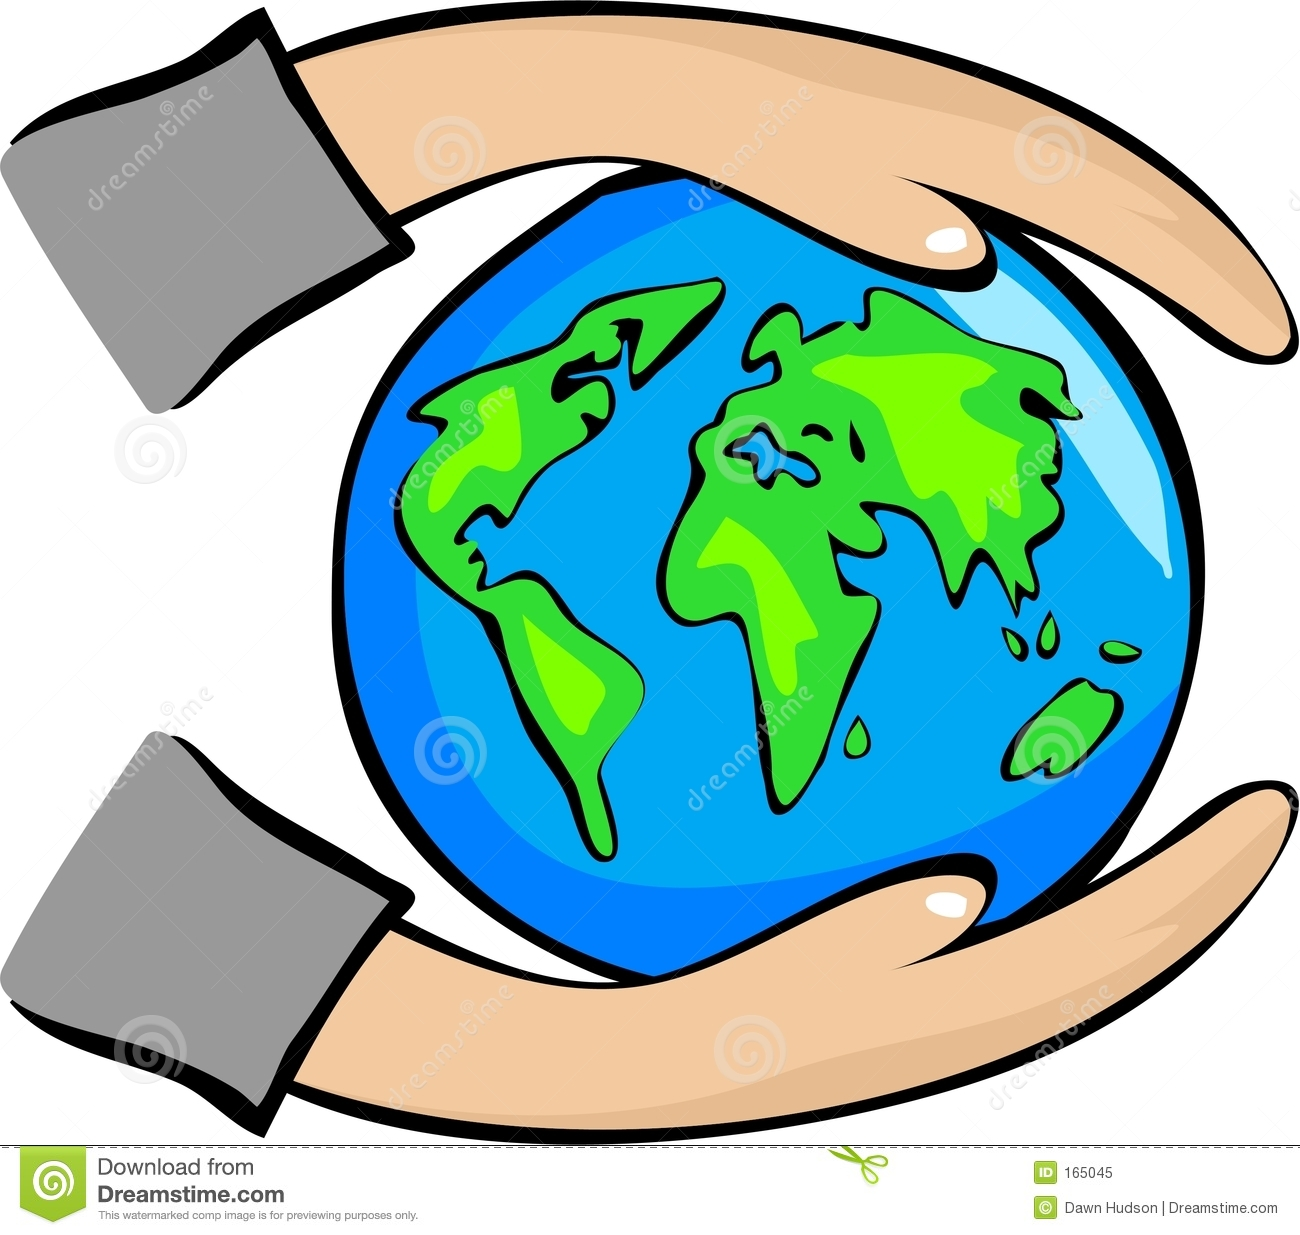 Save our planet border clipart svg library download Environment Clipart | Free download best Environment Clipart ... svg library download